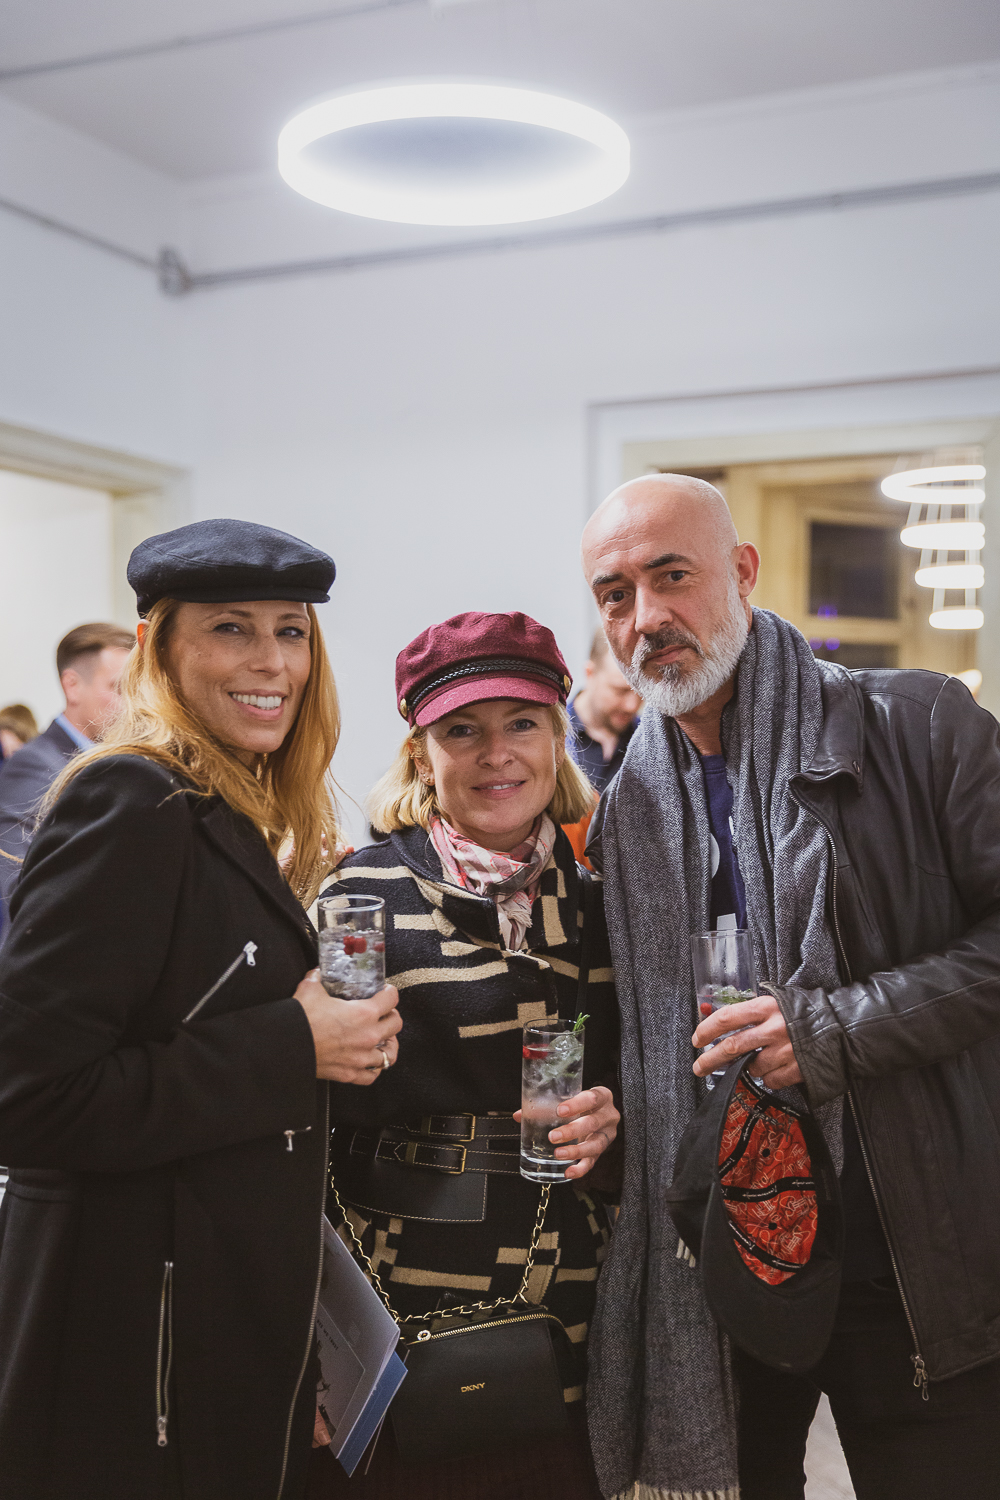 2018-VALISE-Glint-LifestyleFinland-EveningVernissage-webres-7871.jpg